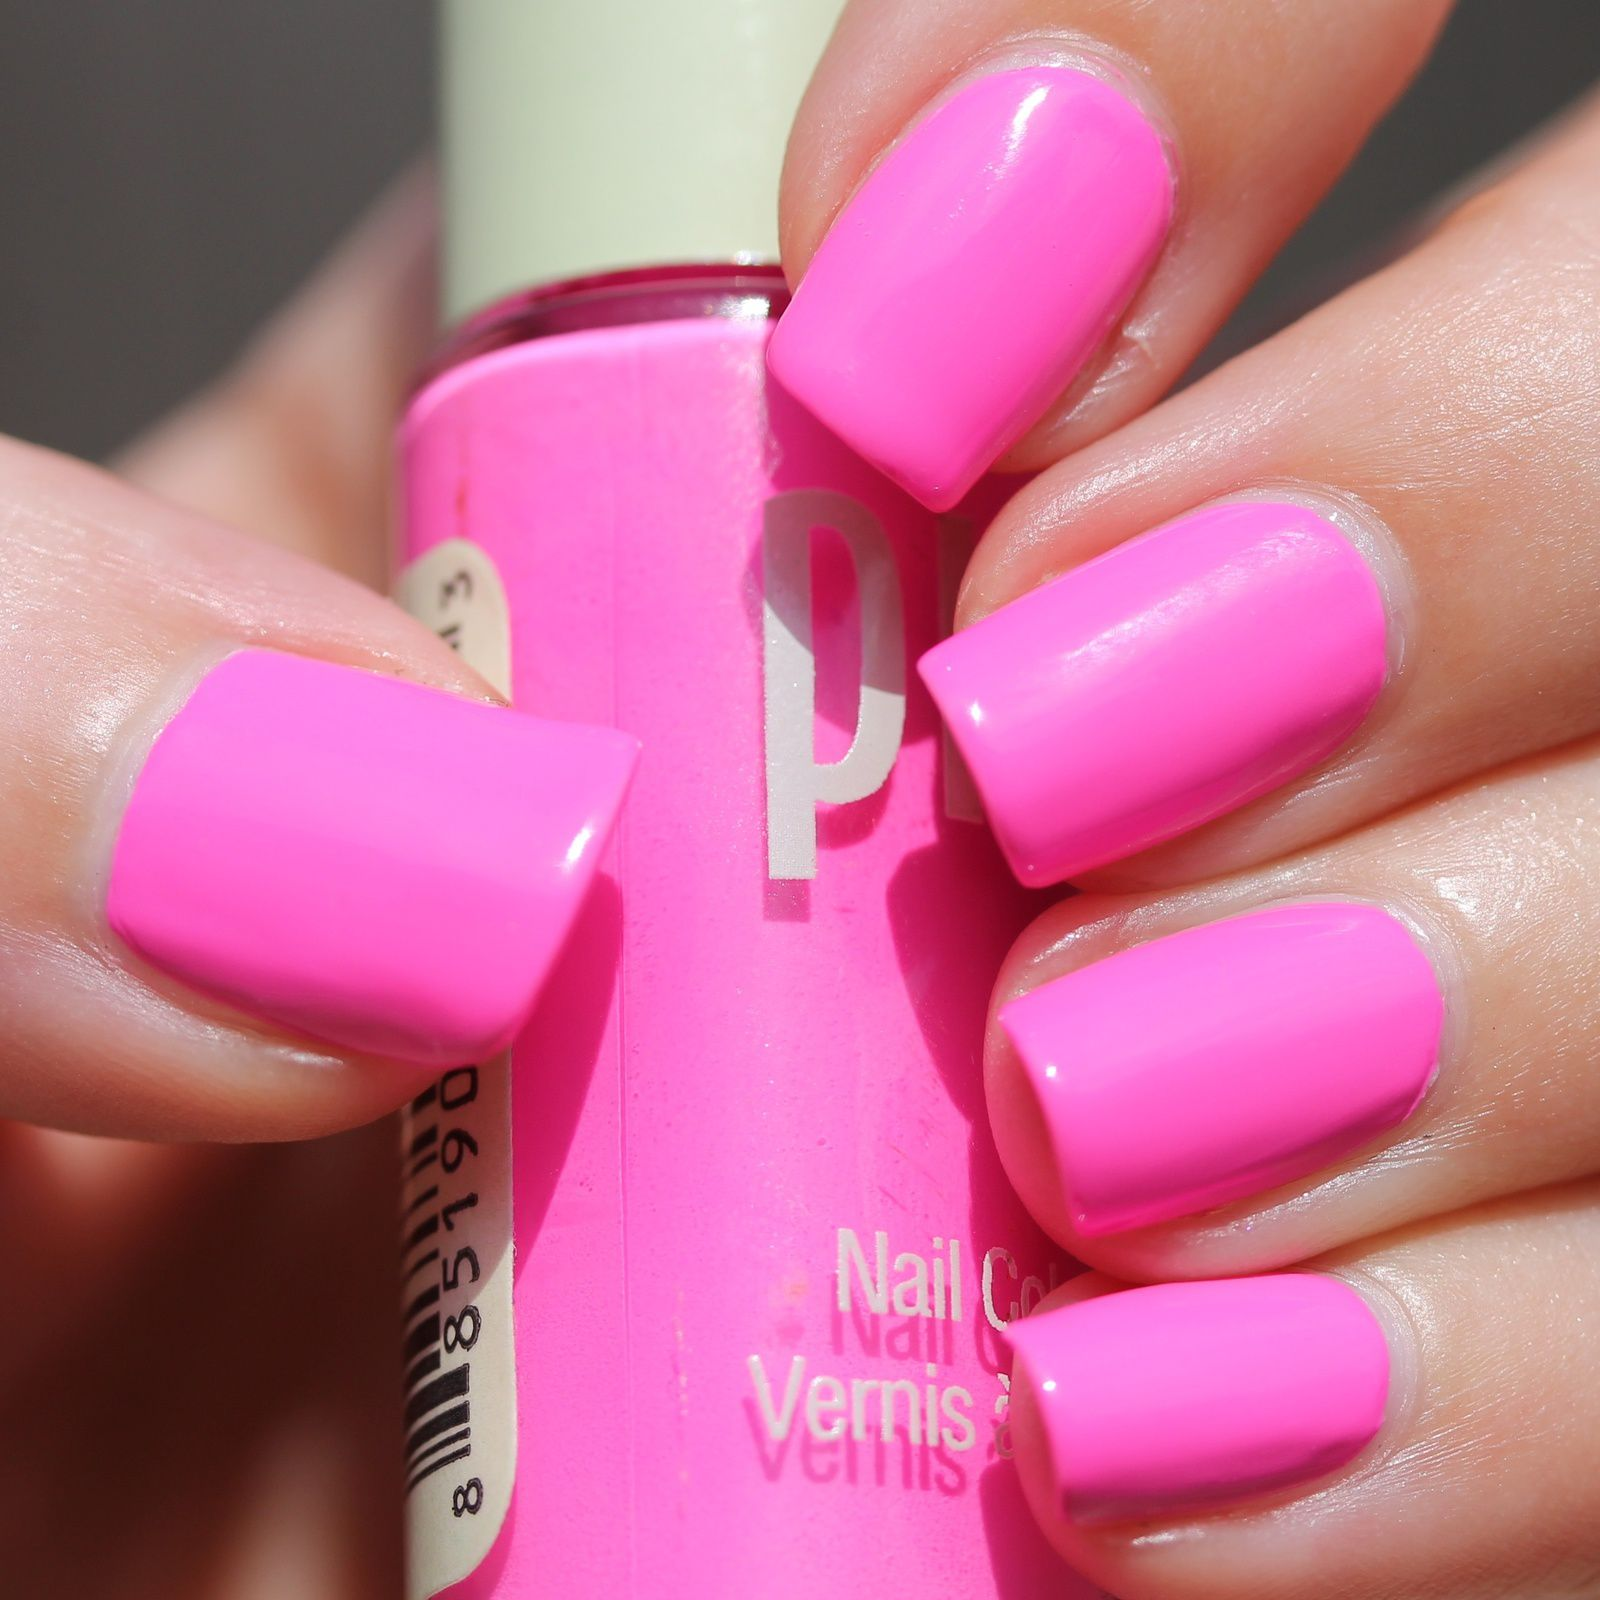 Essie Protein Base Coat / PIXI Paradise Pink / Poshe Top Coat